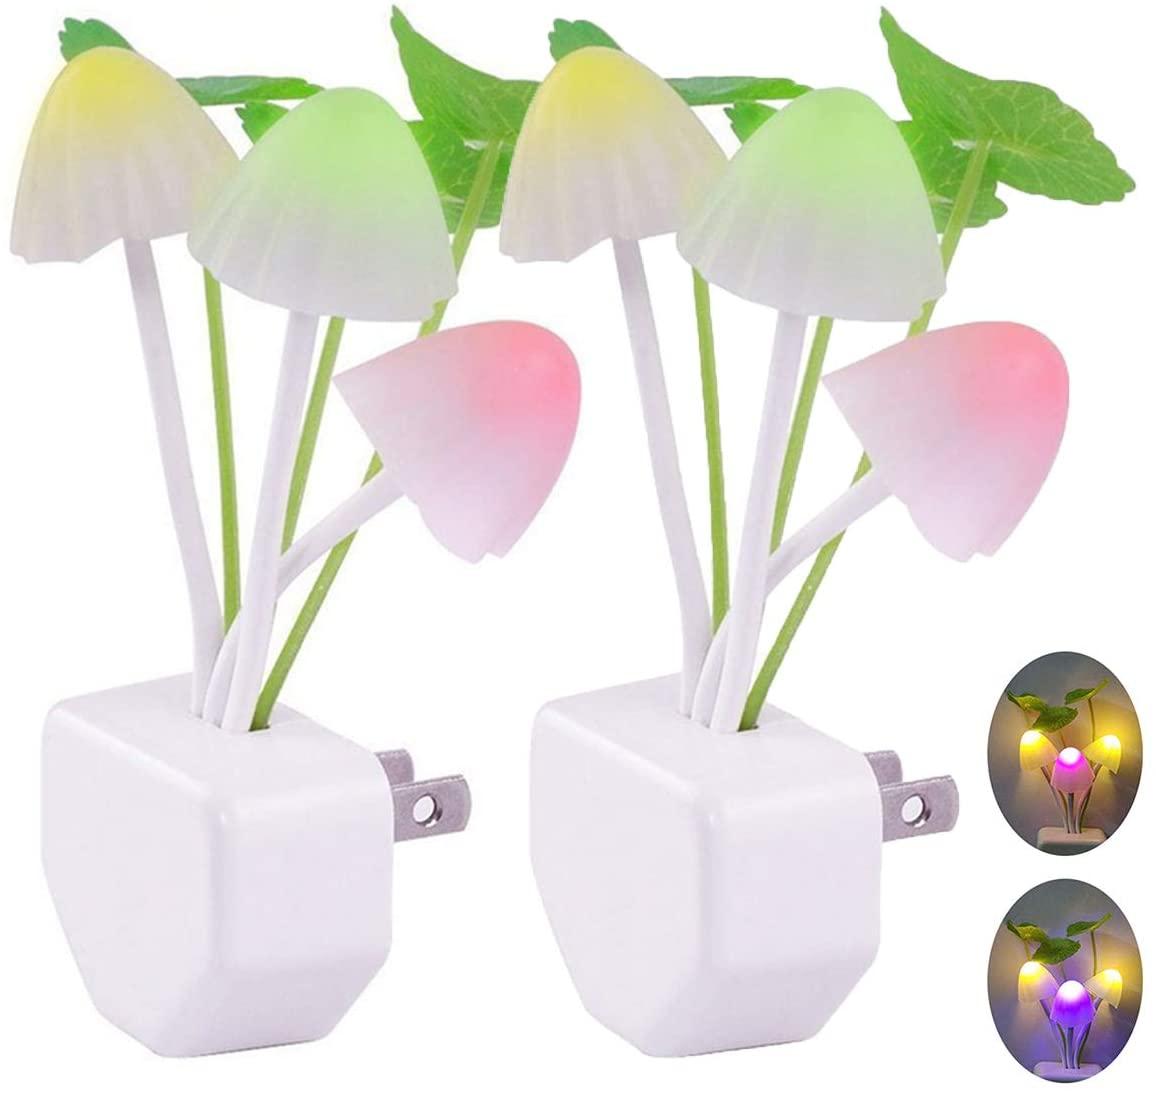 [2 Pack] Plug in Wall LED Mushroom Night Light Lamp with Dusk to Dawn Sensor, Cute Color Changing Bed Nightlight LED Wall Light